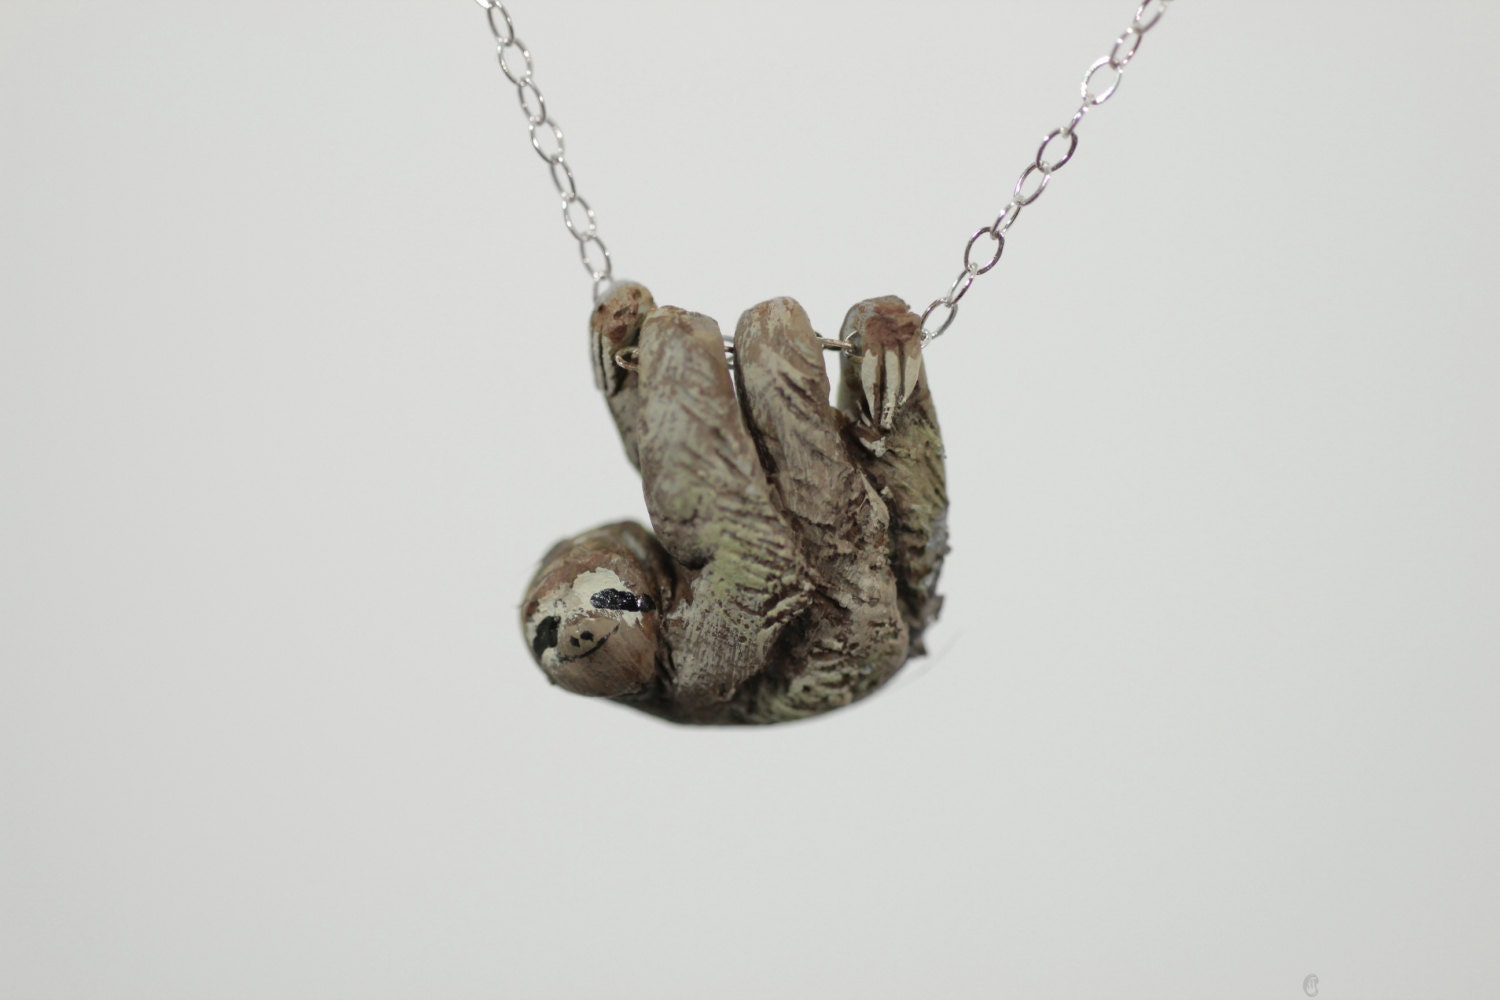 necklace claire pink sloth s us pendant